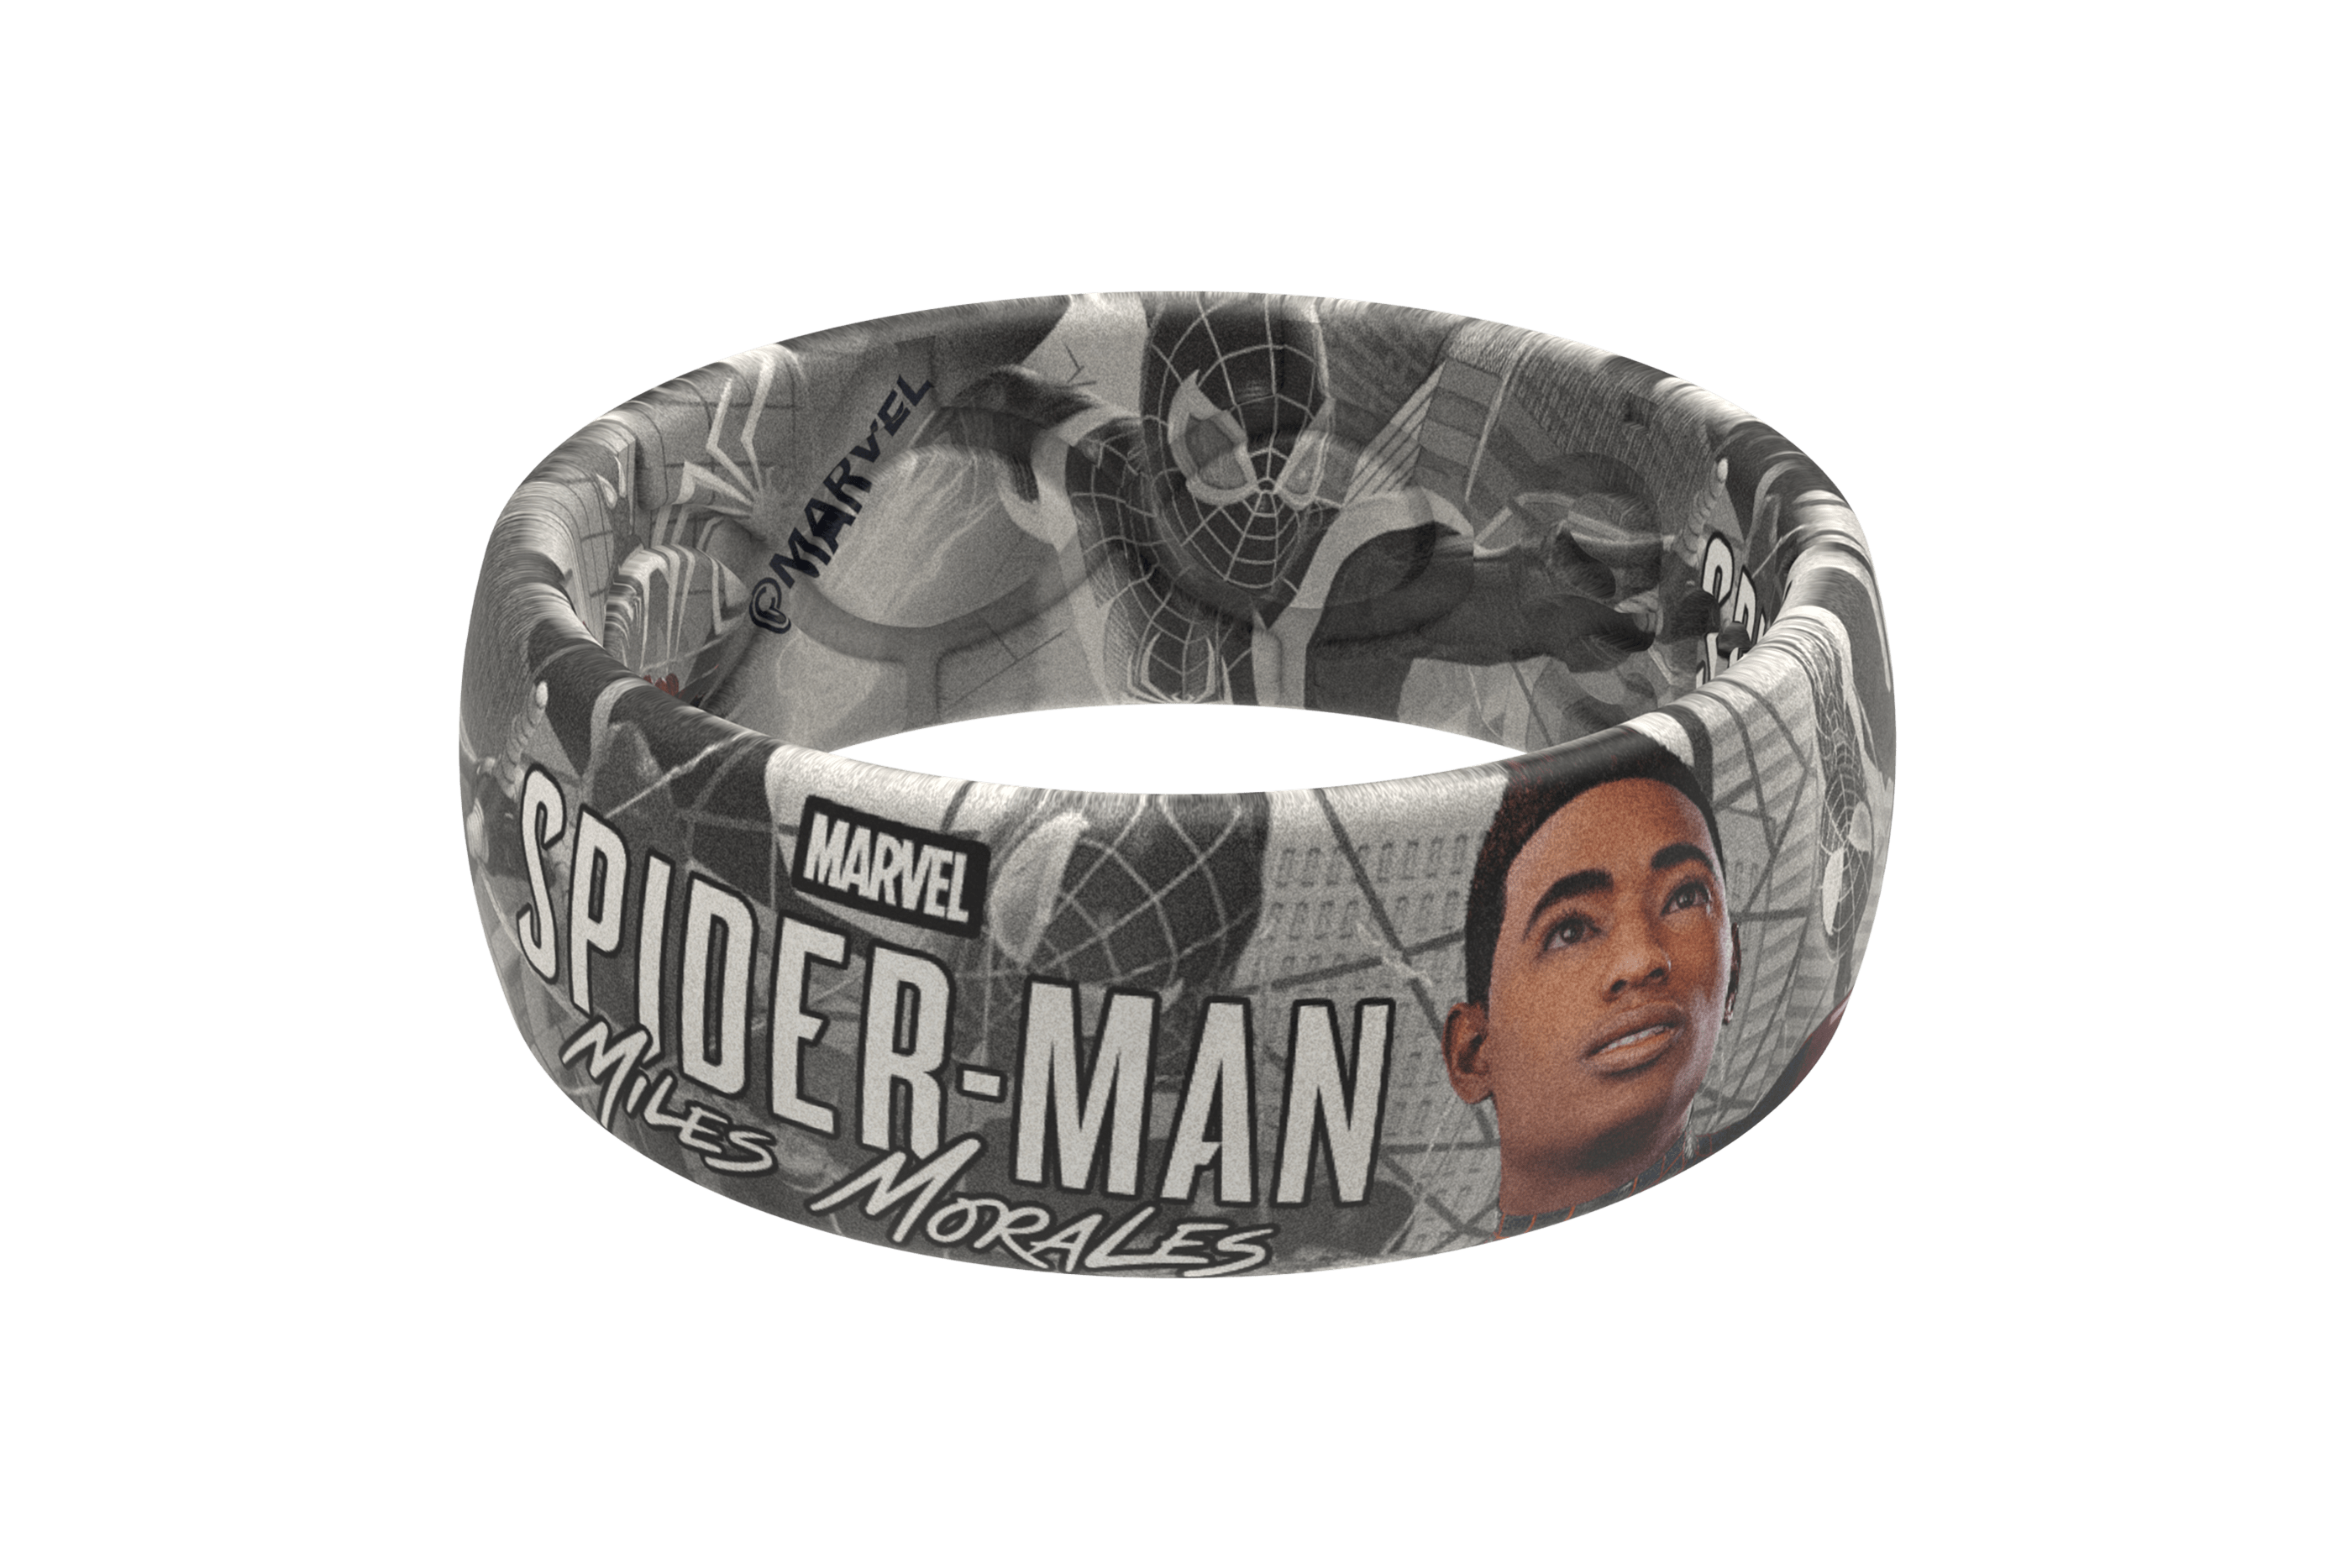 Spider-Man Miles Morales Black and White Comic  viewed front on